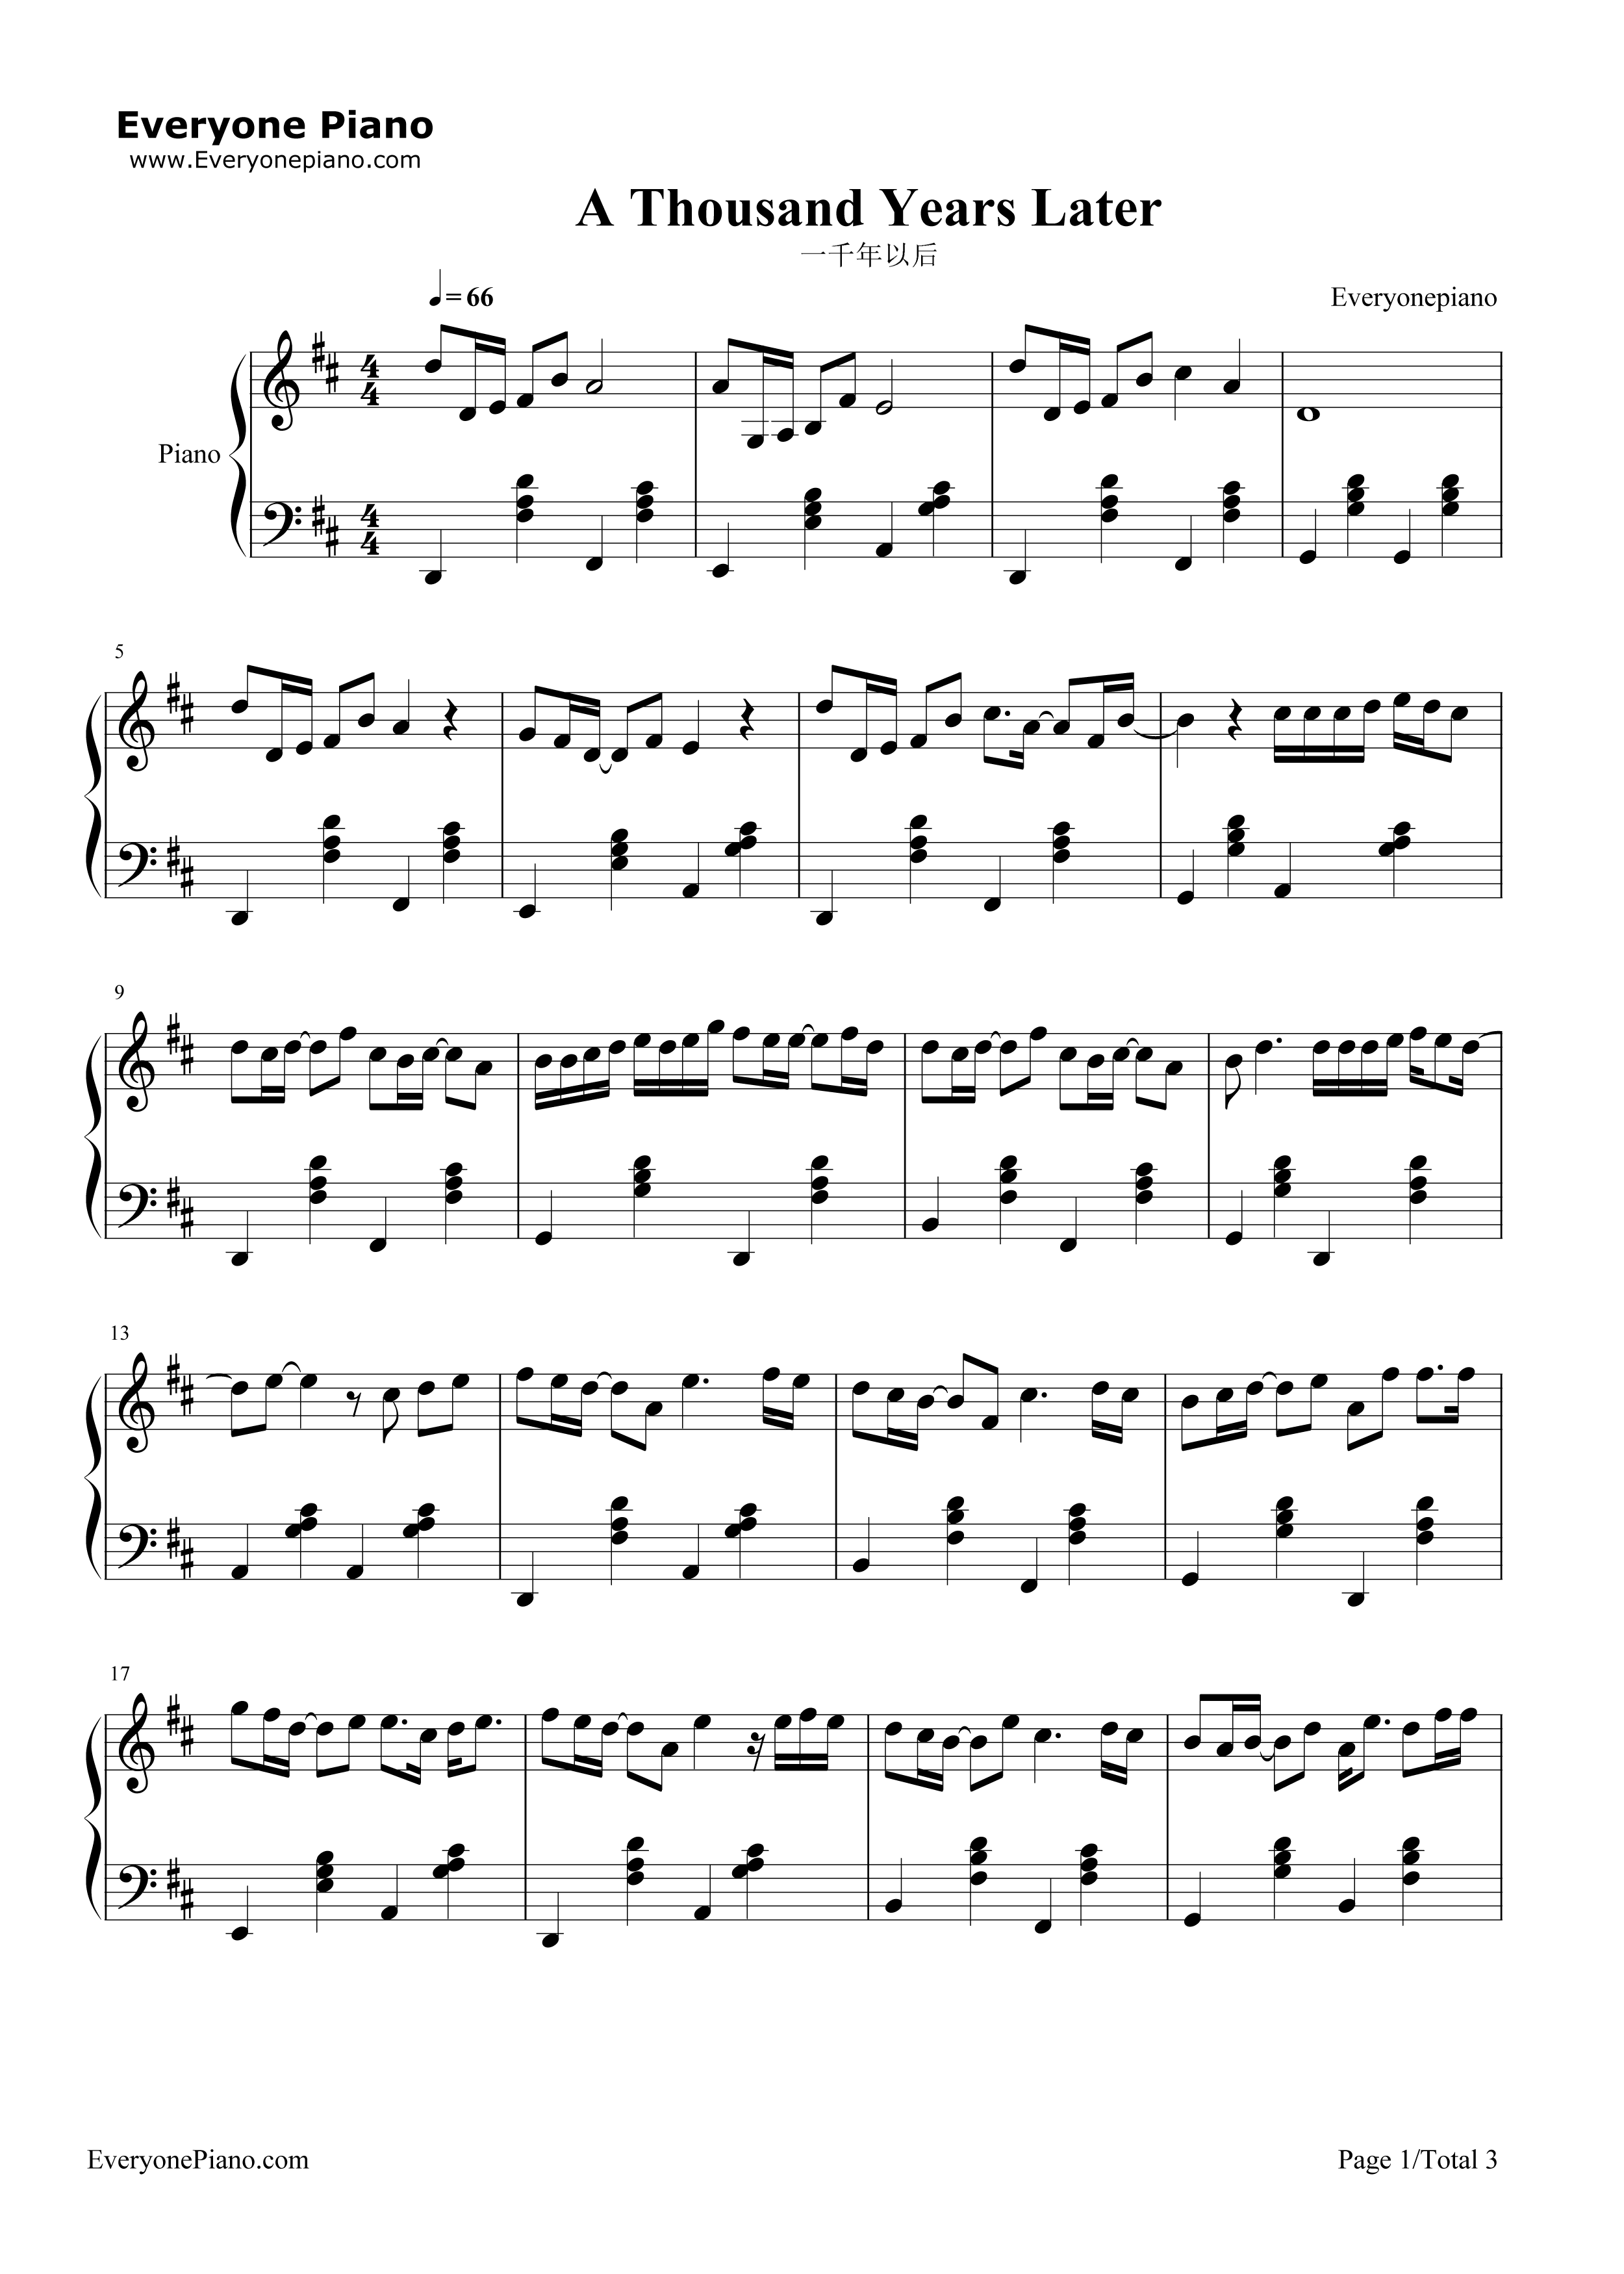 A thousand years later jj lin stave preview 1 free piano sheet listen now print sheet a thousand years later jj lin stave preview 1 hexwebz Image collections